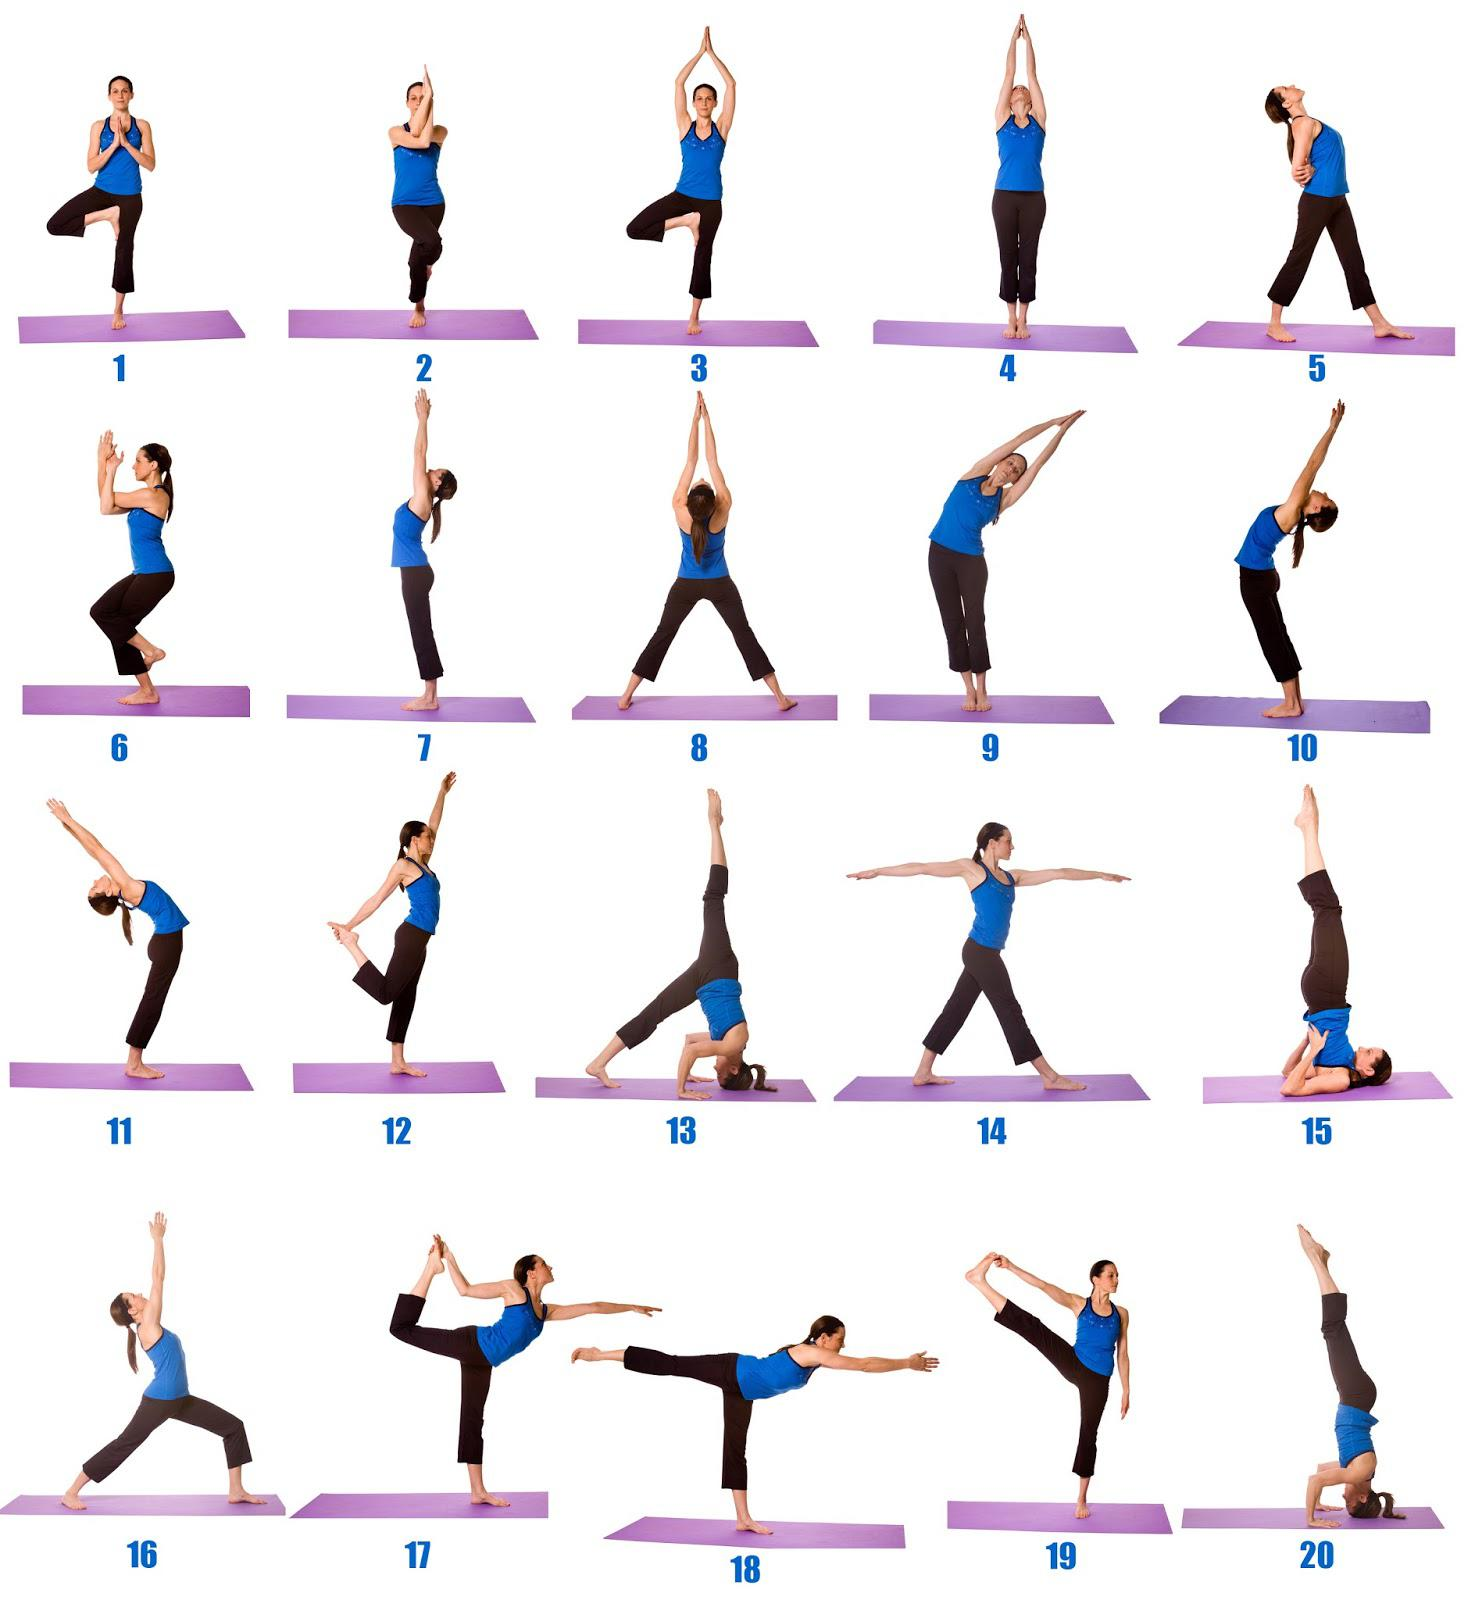 Yoga Exercises For Beginners For Android Apk Download